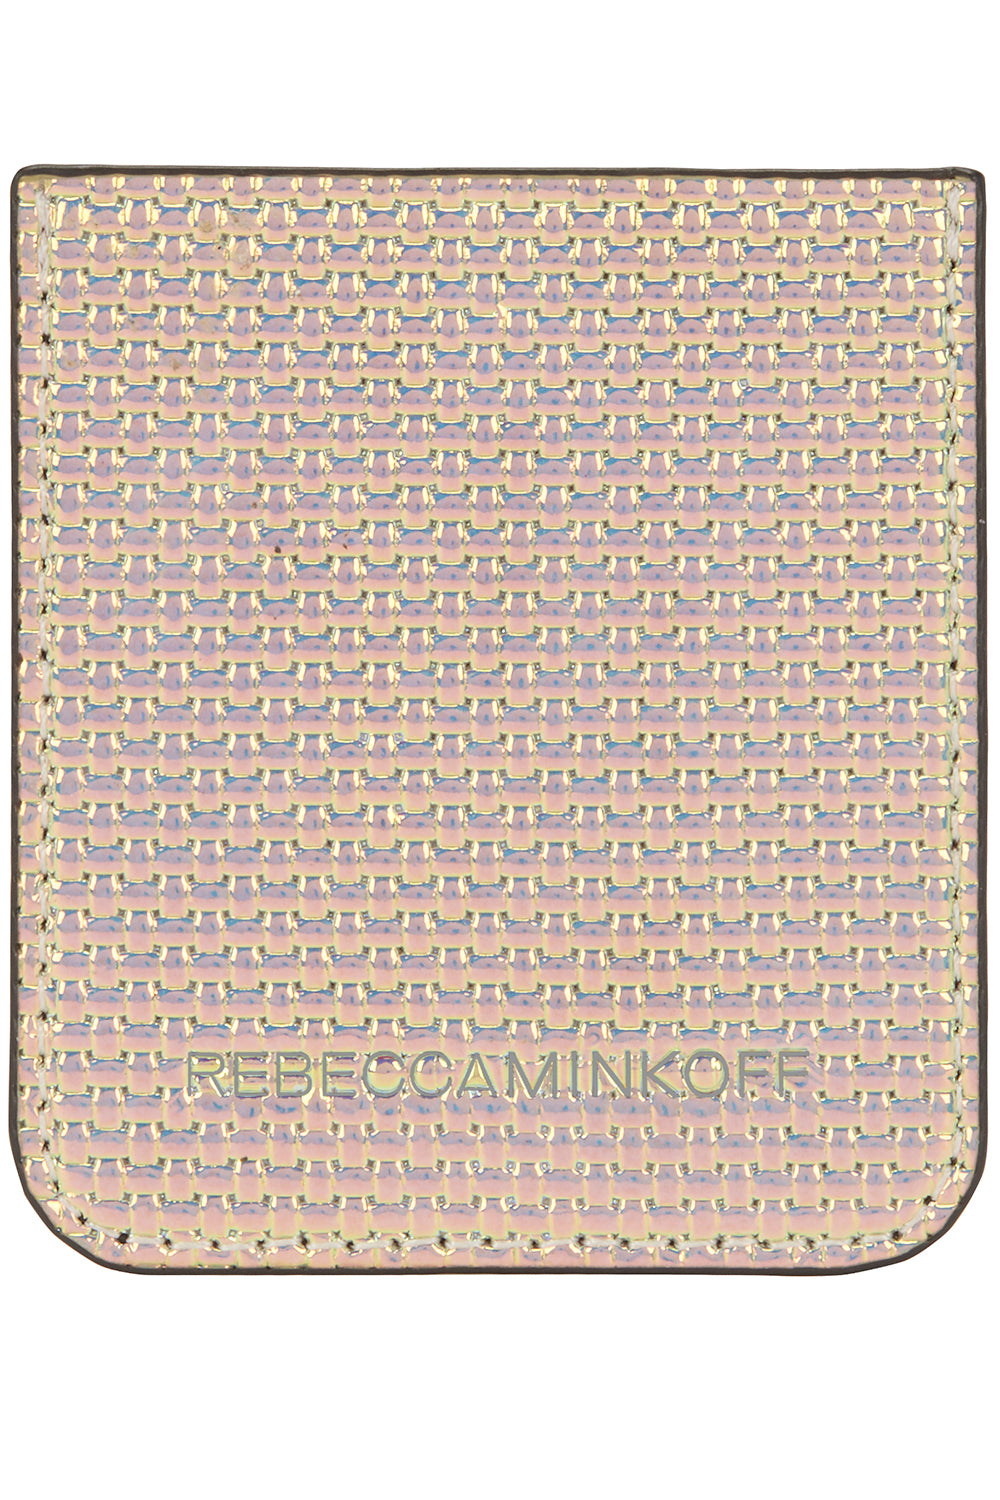 Adhesive Phone Sticker Pocket